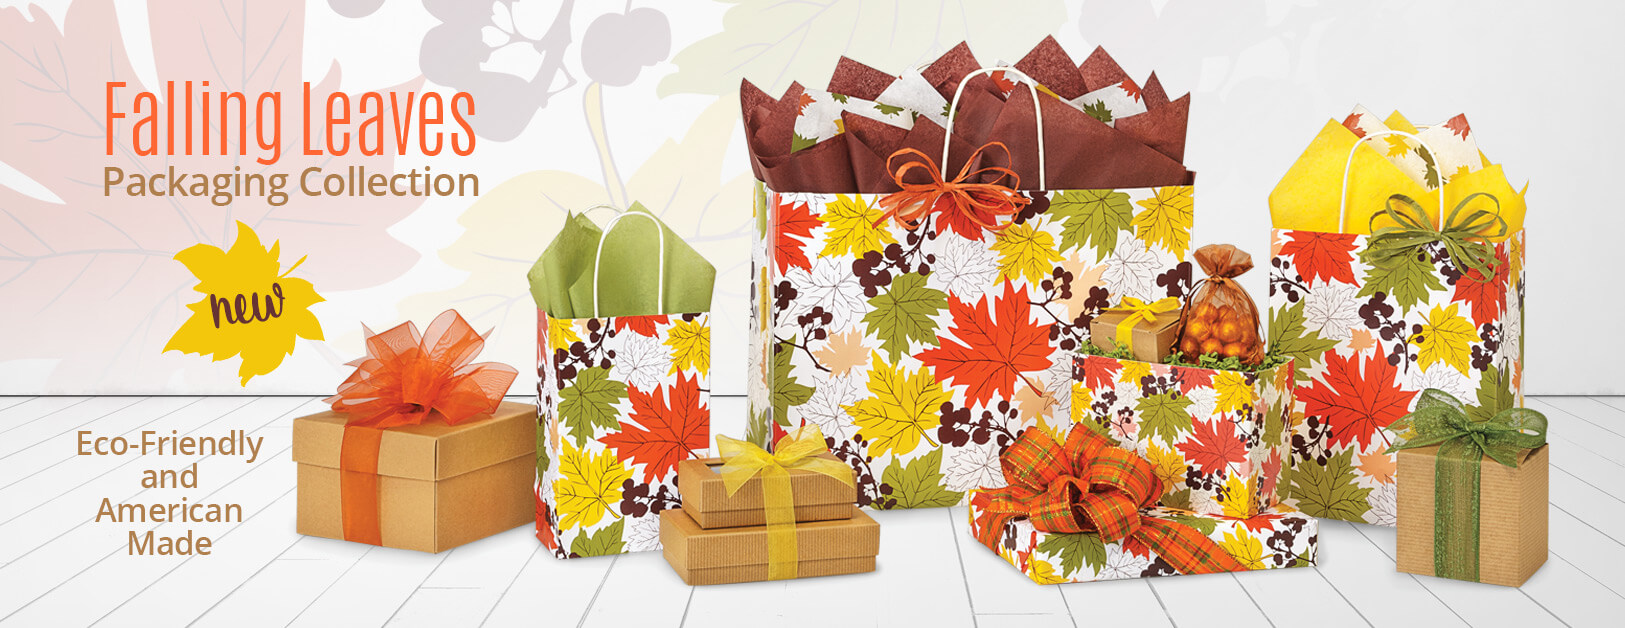 Falling Leaves Packaging Collection from Nashville Wraps